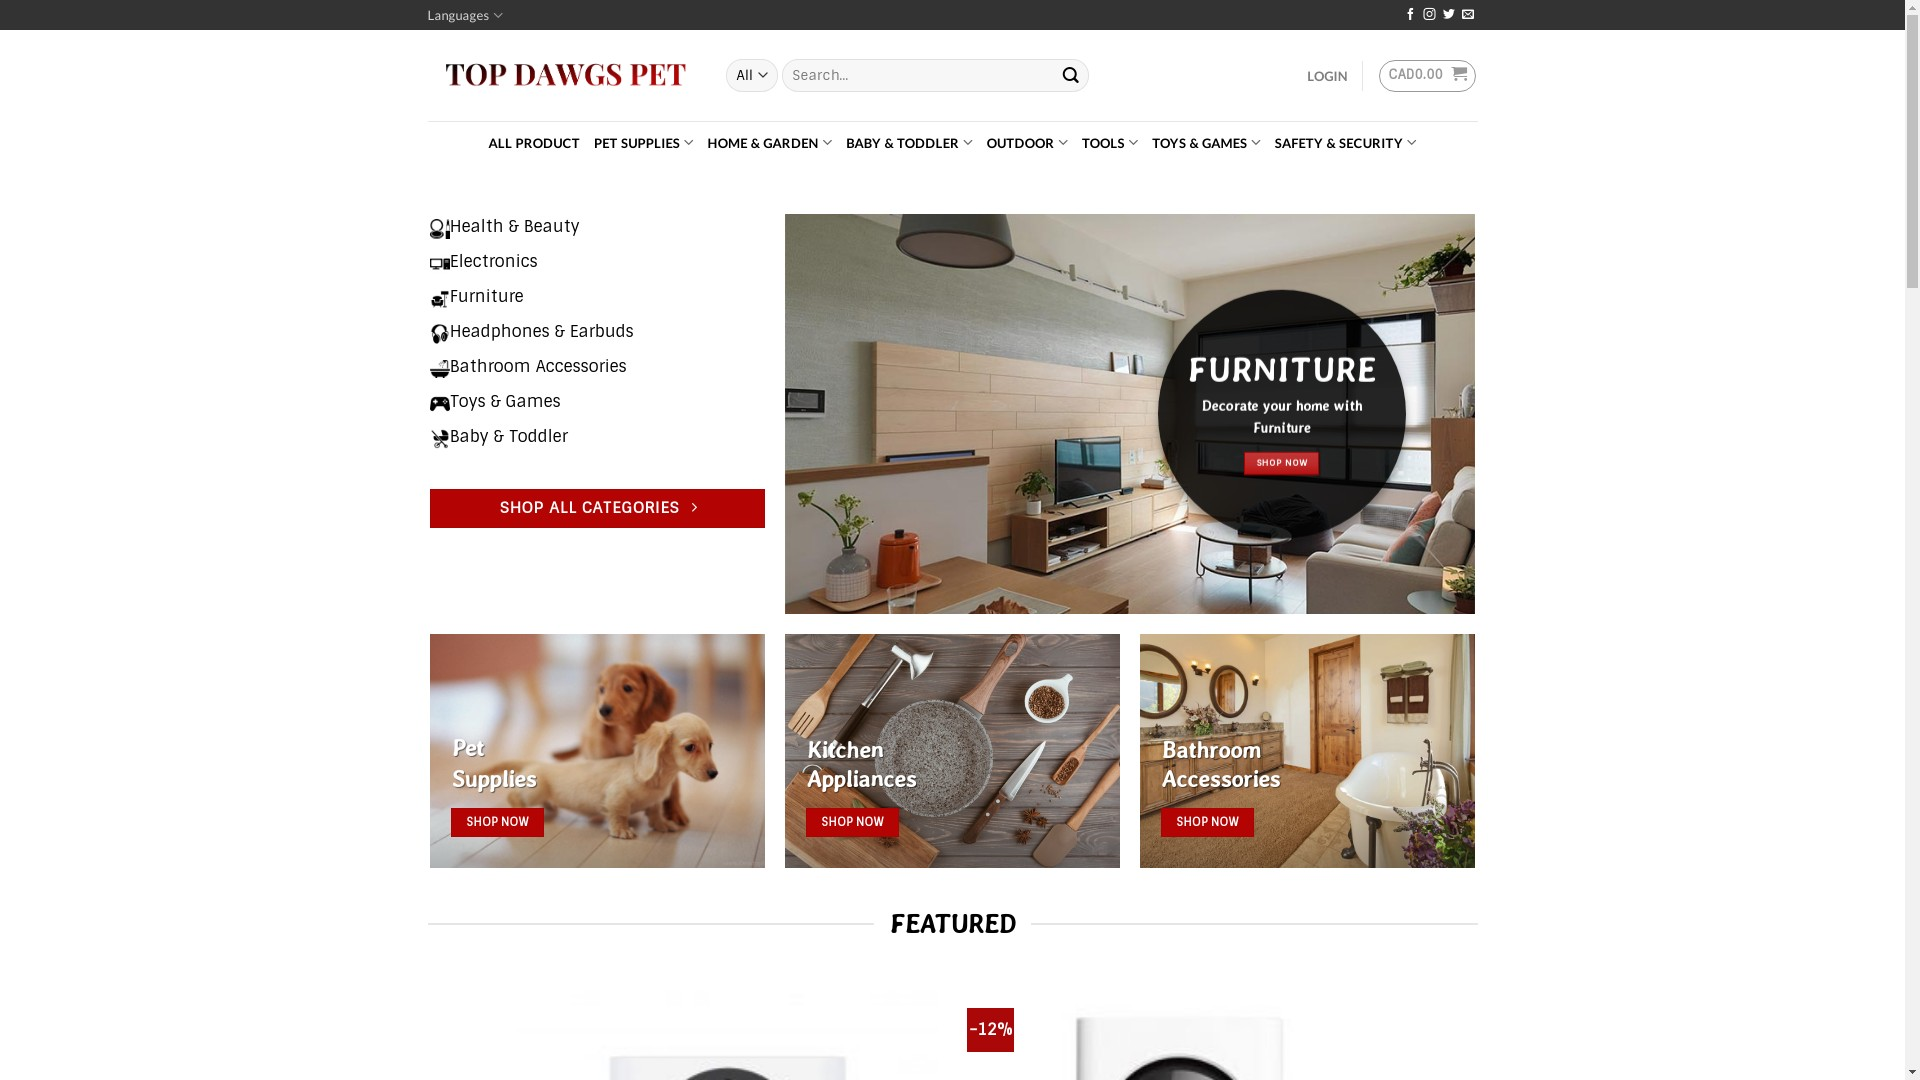 Is Top Dawgs Pet a Scam? Review of the Online Store